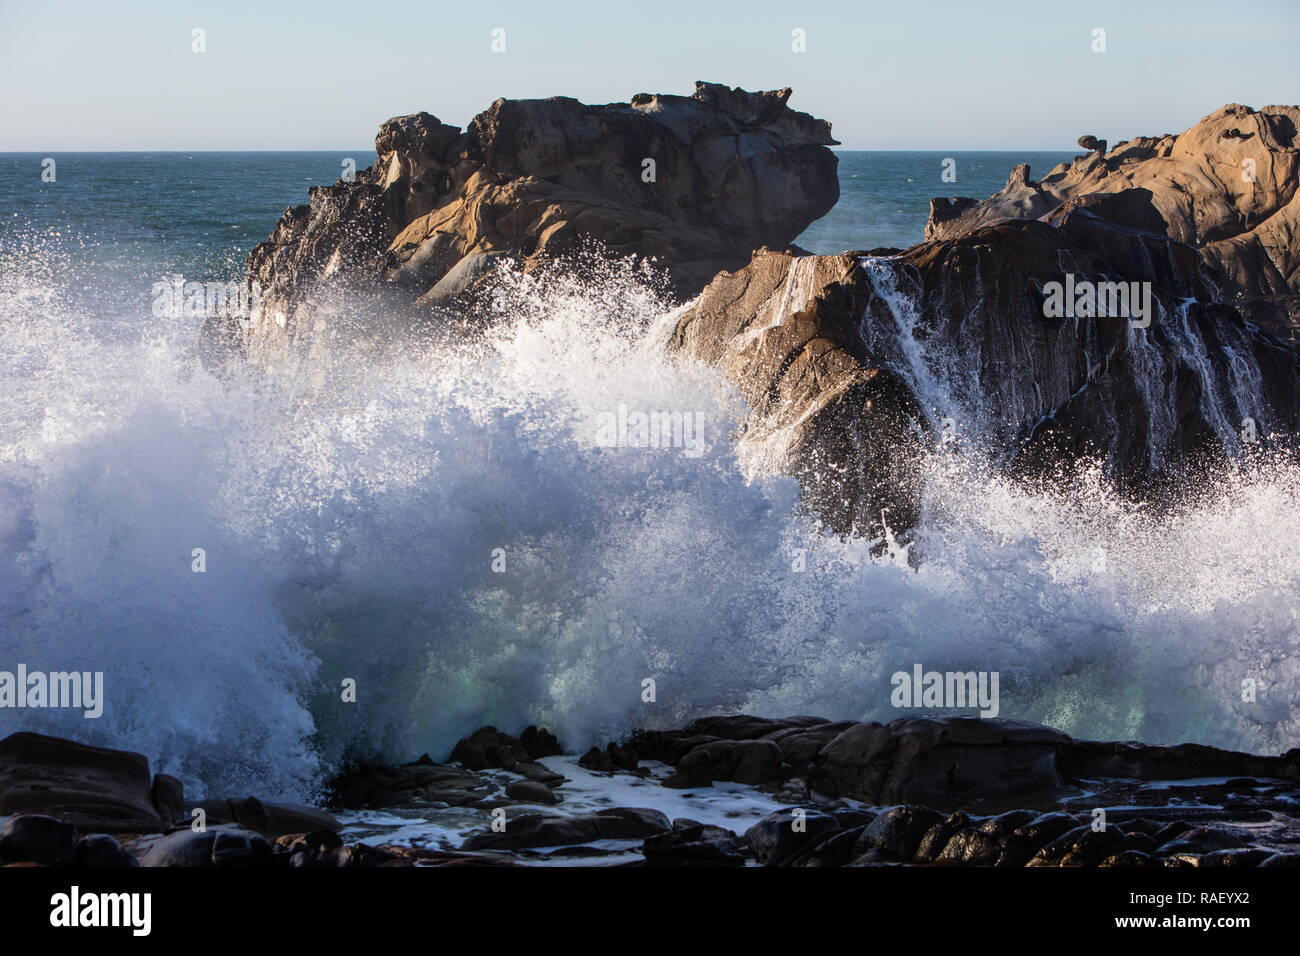 The cold waters of the Pacific Ocean crash against the rocky